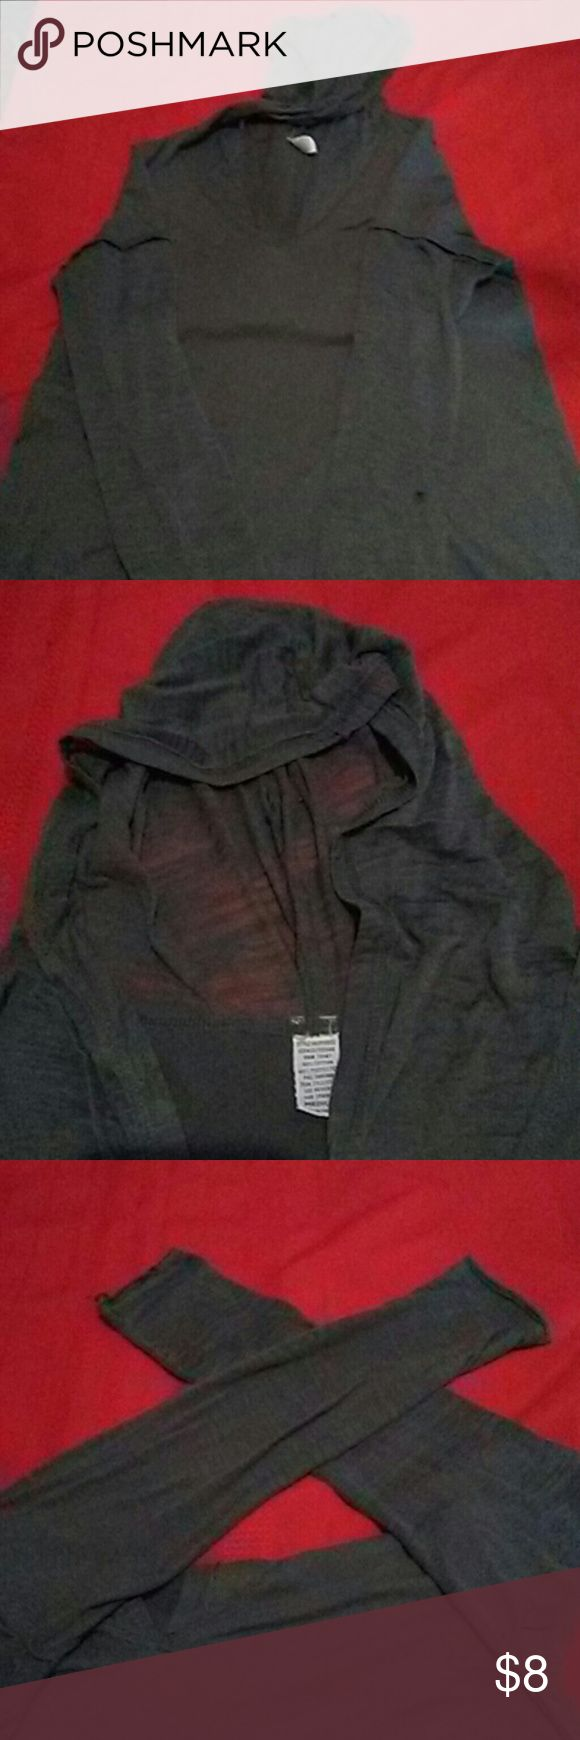 Gray thin hoody This hoody gives the look of two shirts the hood and sleeves are very sheer. The body is thin and comfy no tags Tops Tees - Long Sleeve